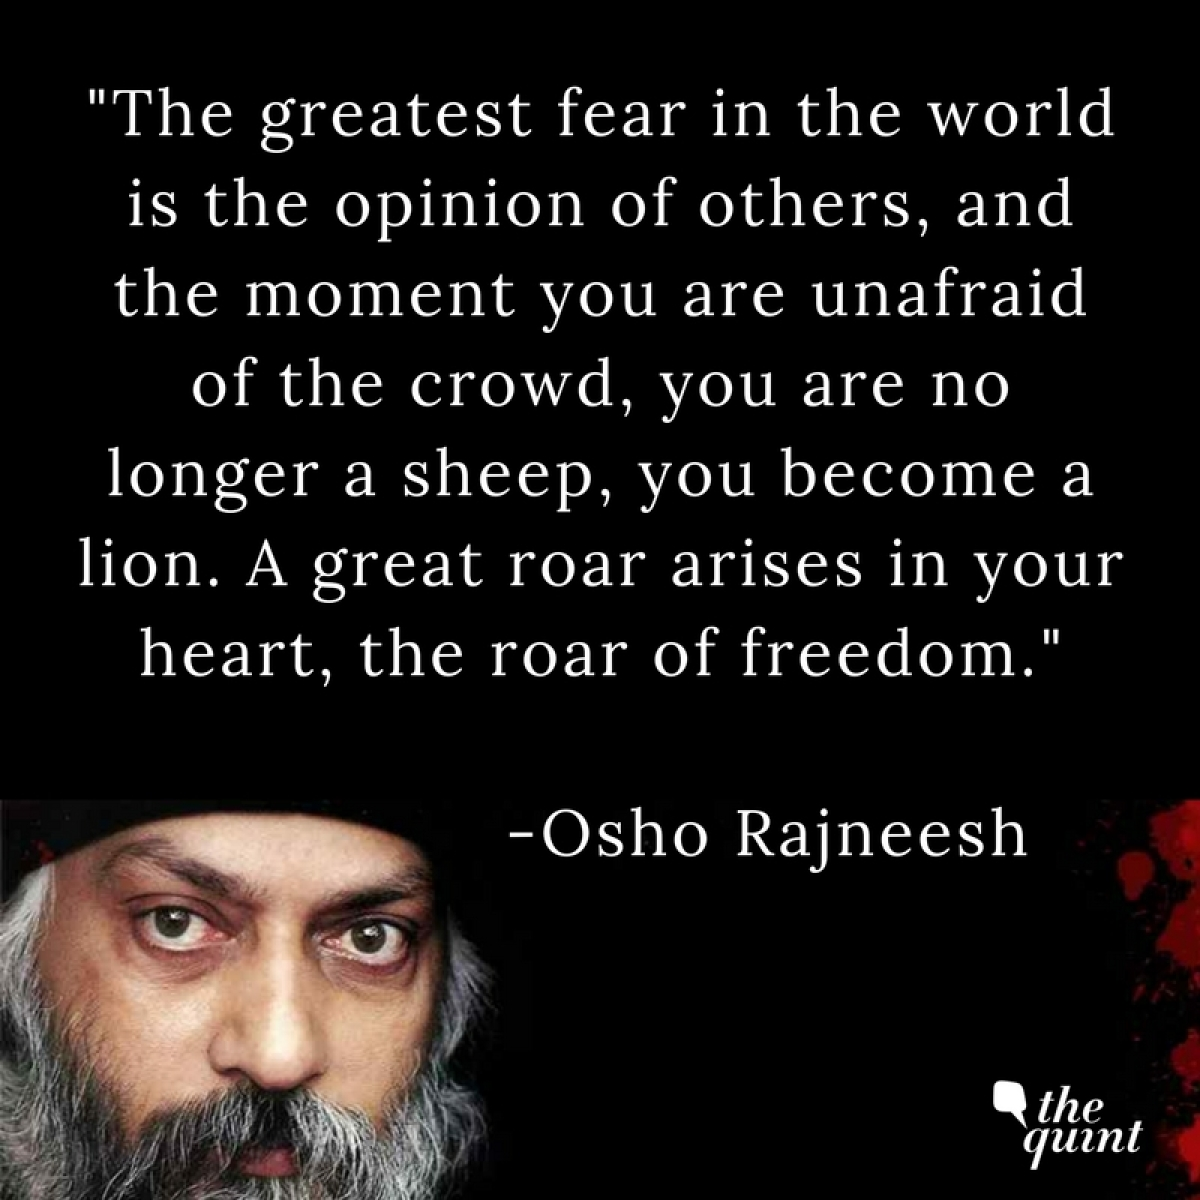 Osho Seven Beautiful Life Lessons By The Philosopher And Preacher